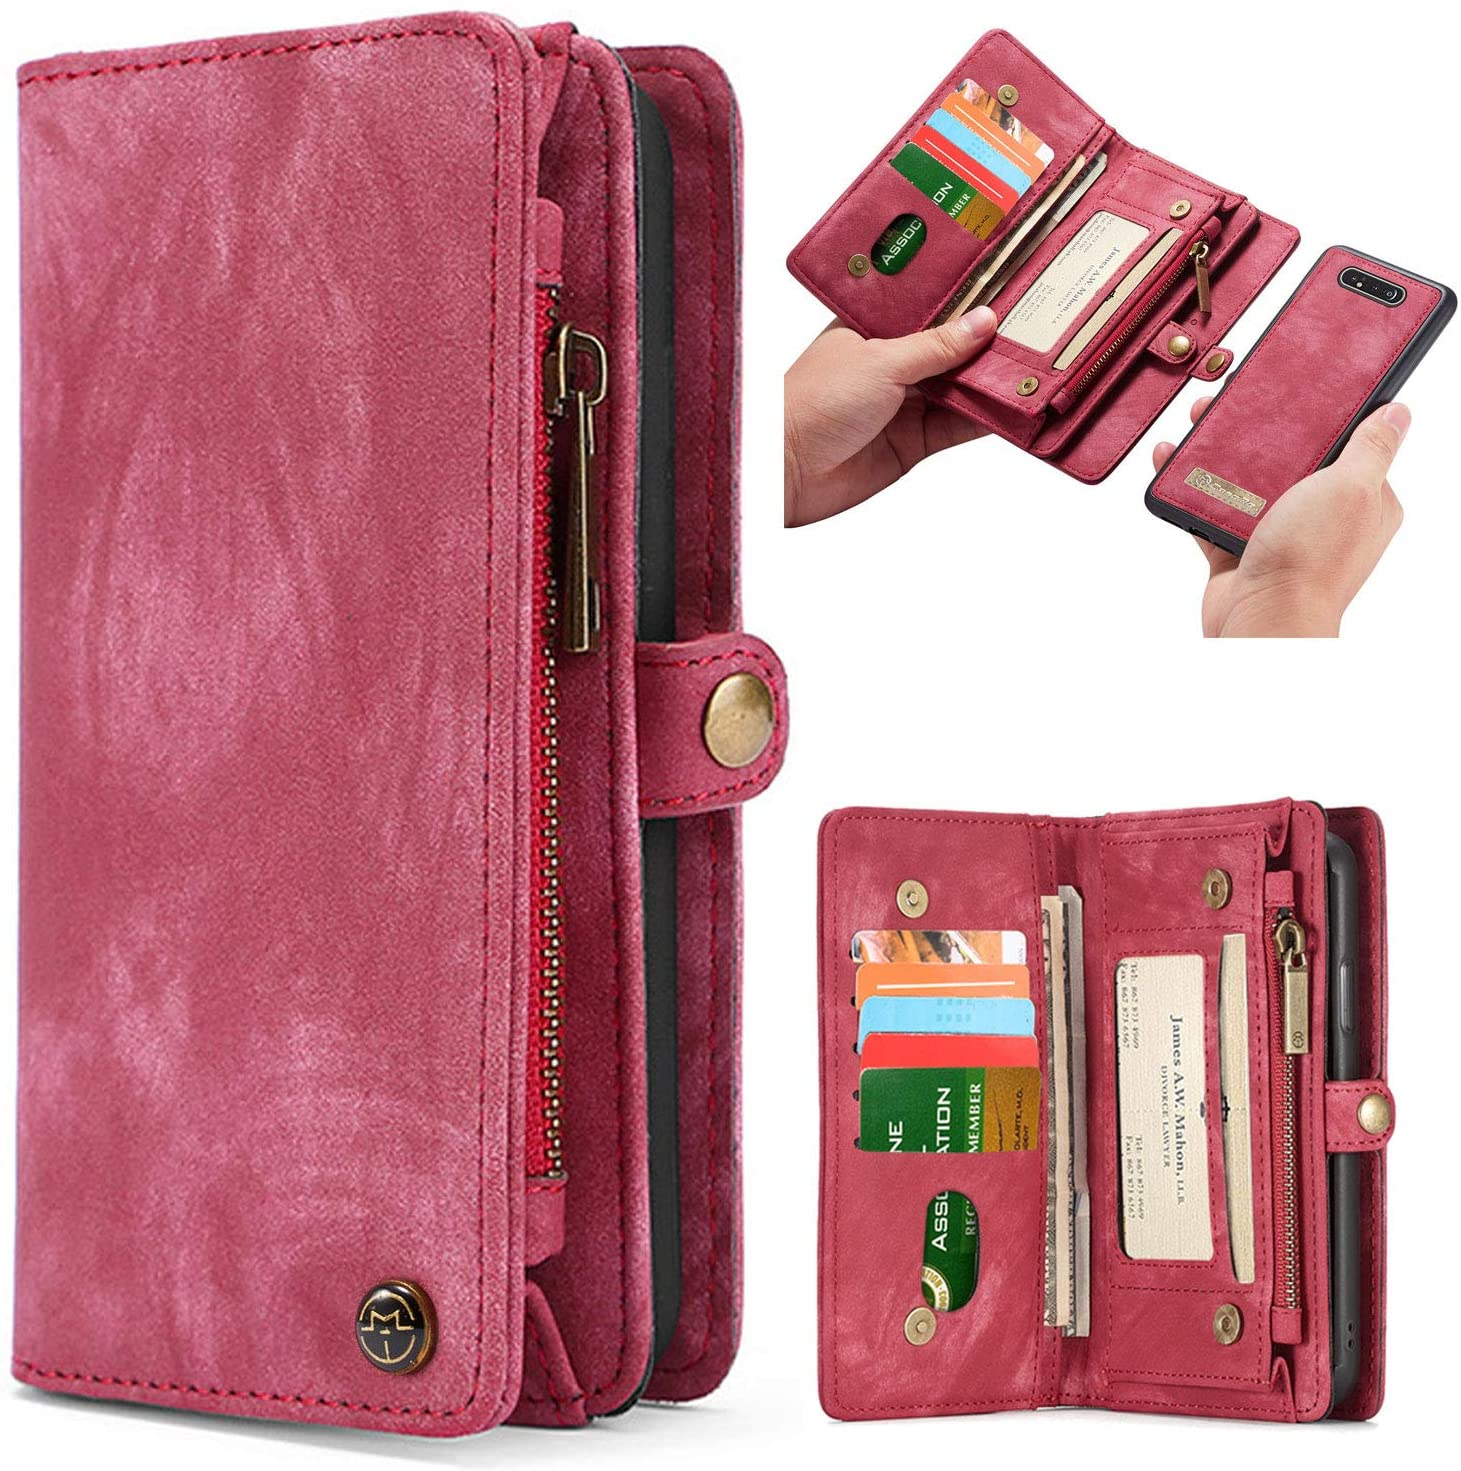 Simicoo Samsung A20 A30 Leather Wallet Zipper Purse Detachable Card Slots Holder Flip Case Magnetic Wrist Strap Handle Shockproof Cover Pocket Wallet Handbag for Samsung A20 A30 (Red, A20)